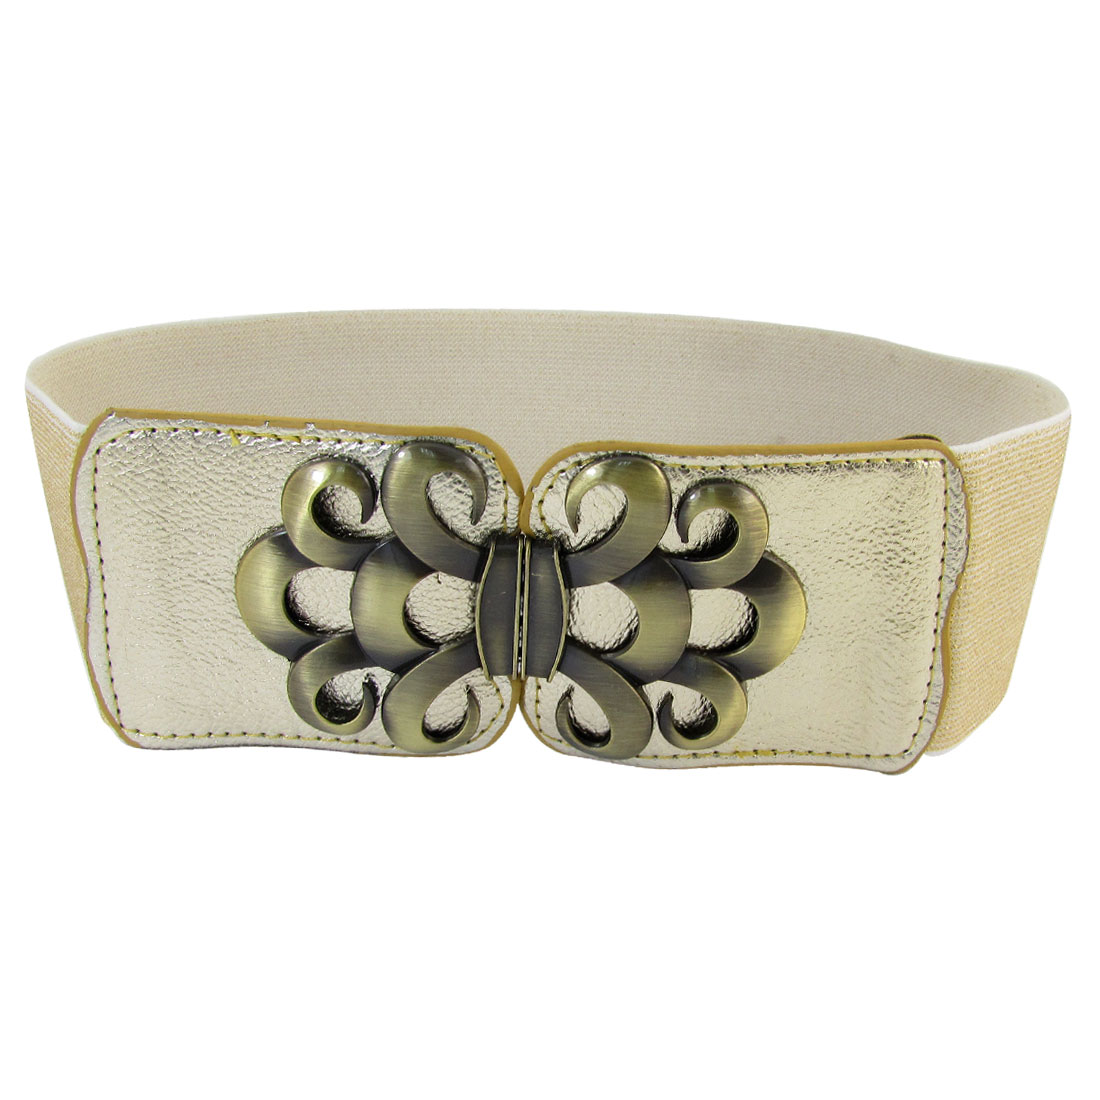 Metal Flower Shape Interlocking Buckle Textured Spandex Waist Belt Gold Tone